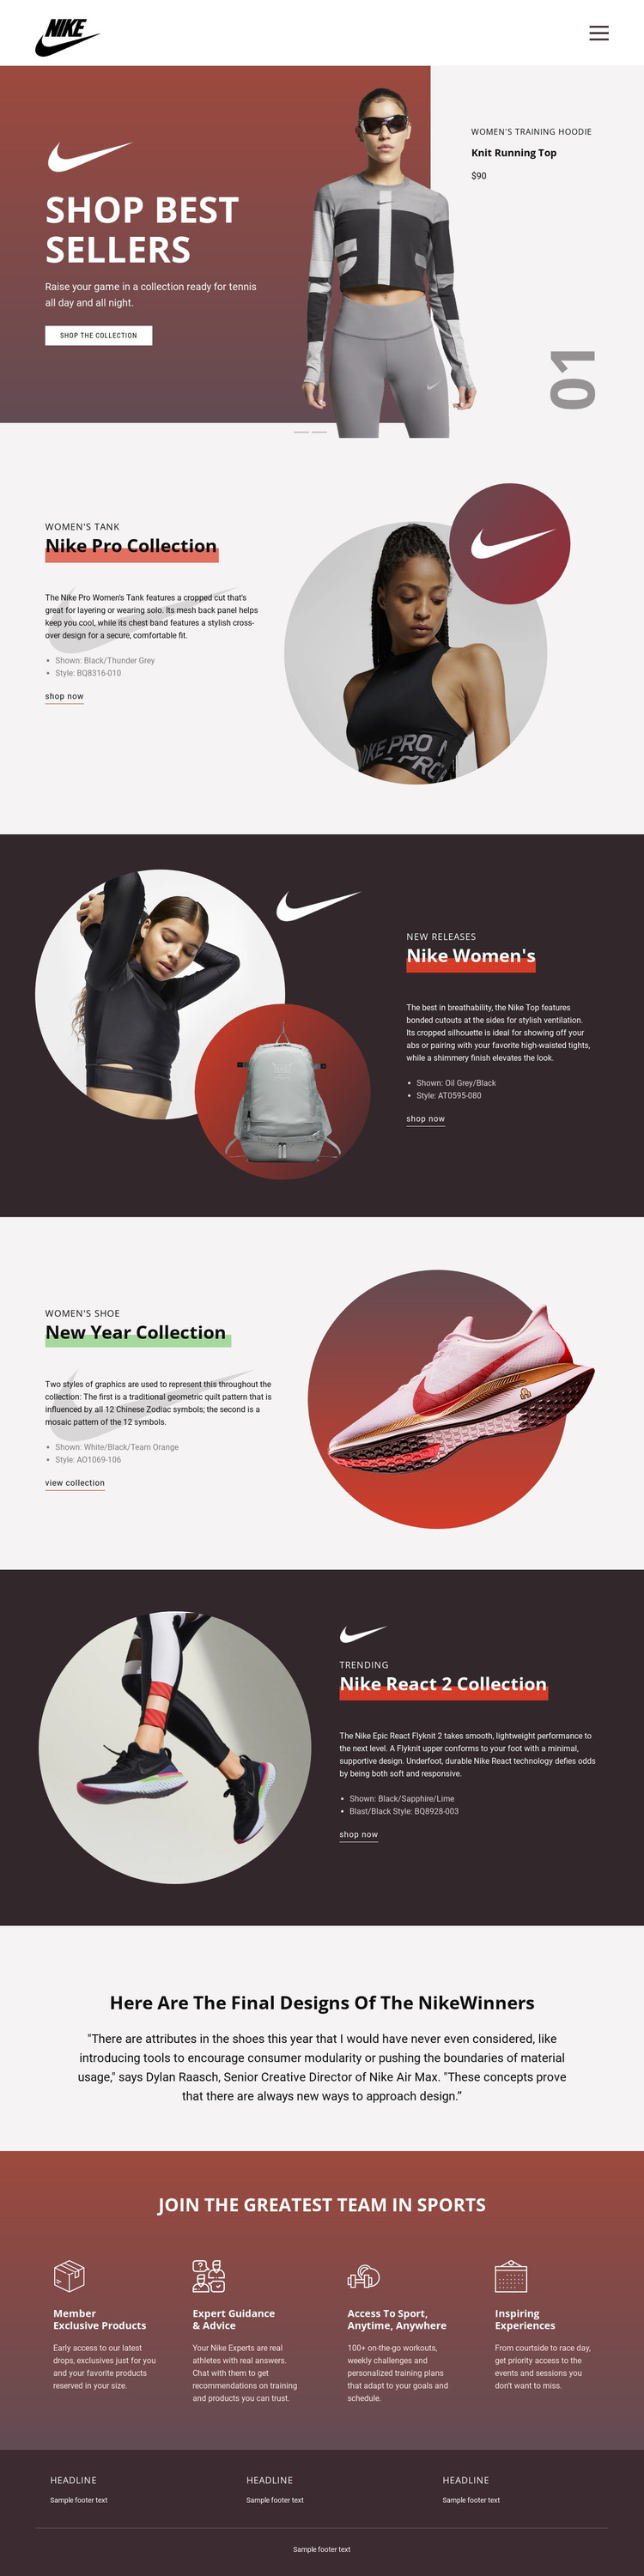 Best sellers for sports HTML Template